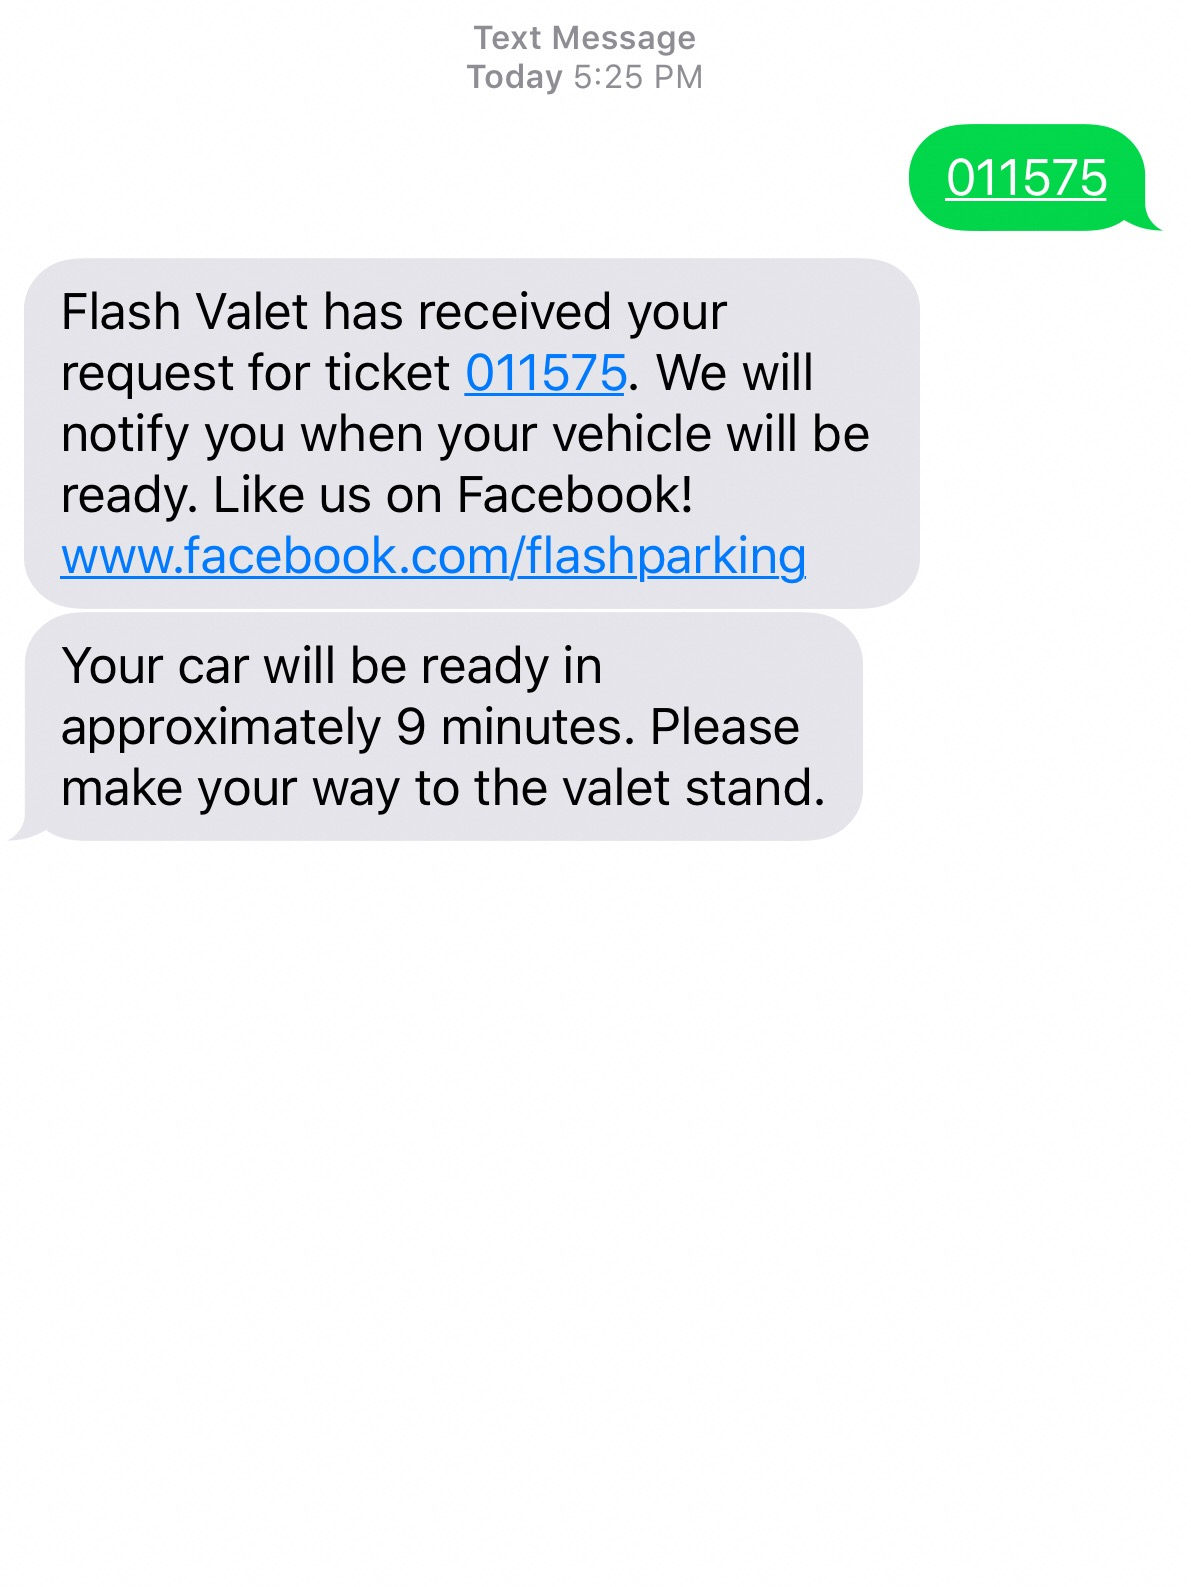 The valet had a text line to hail your car, so you didn't have to wait for it at the valet stand.